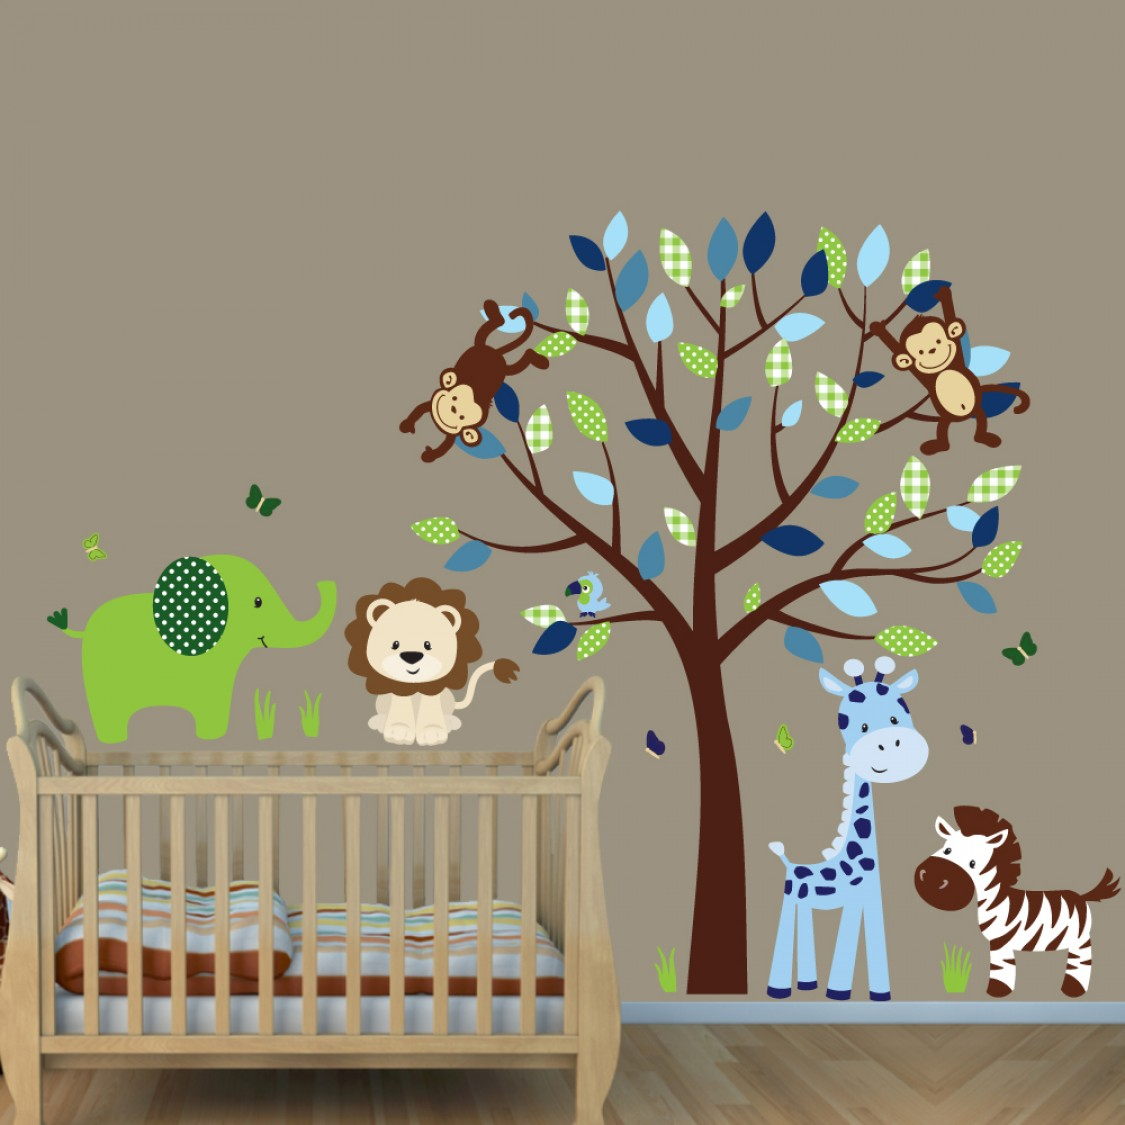 Green Blue Jungle Animal Wall Decals With Elephant Wall Decal - Wall decals jungle